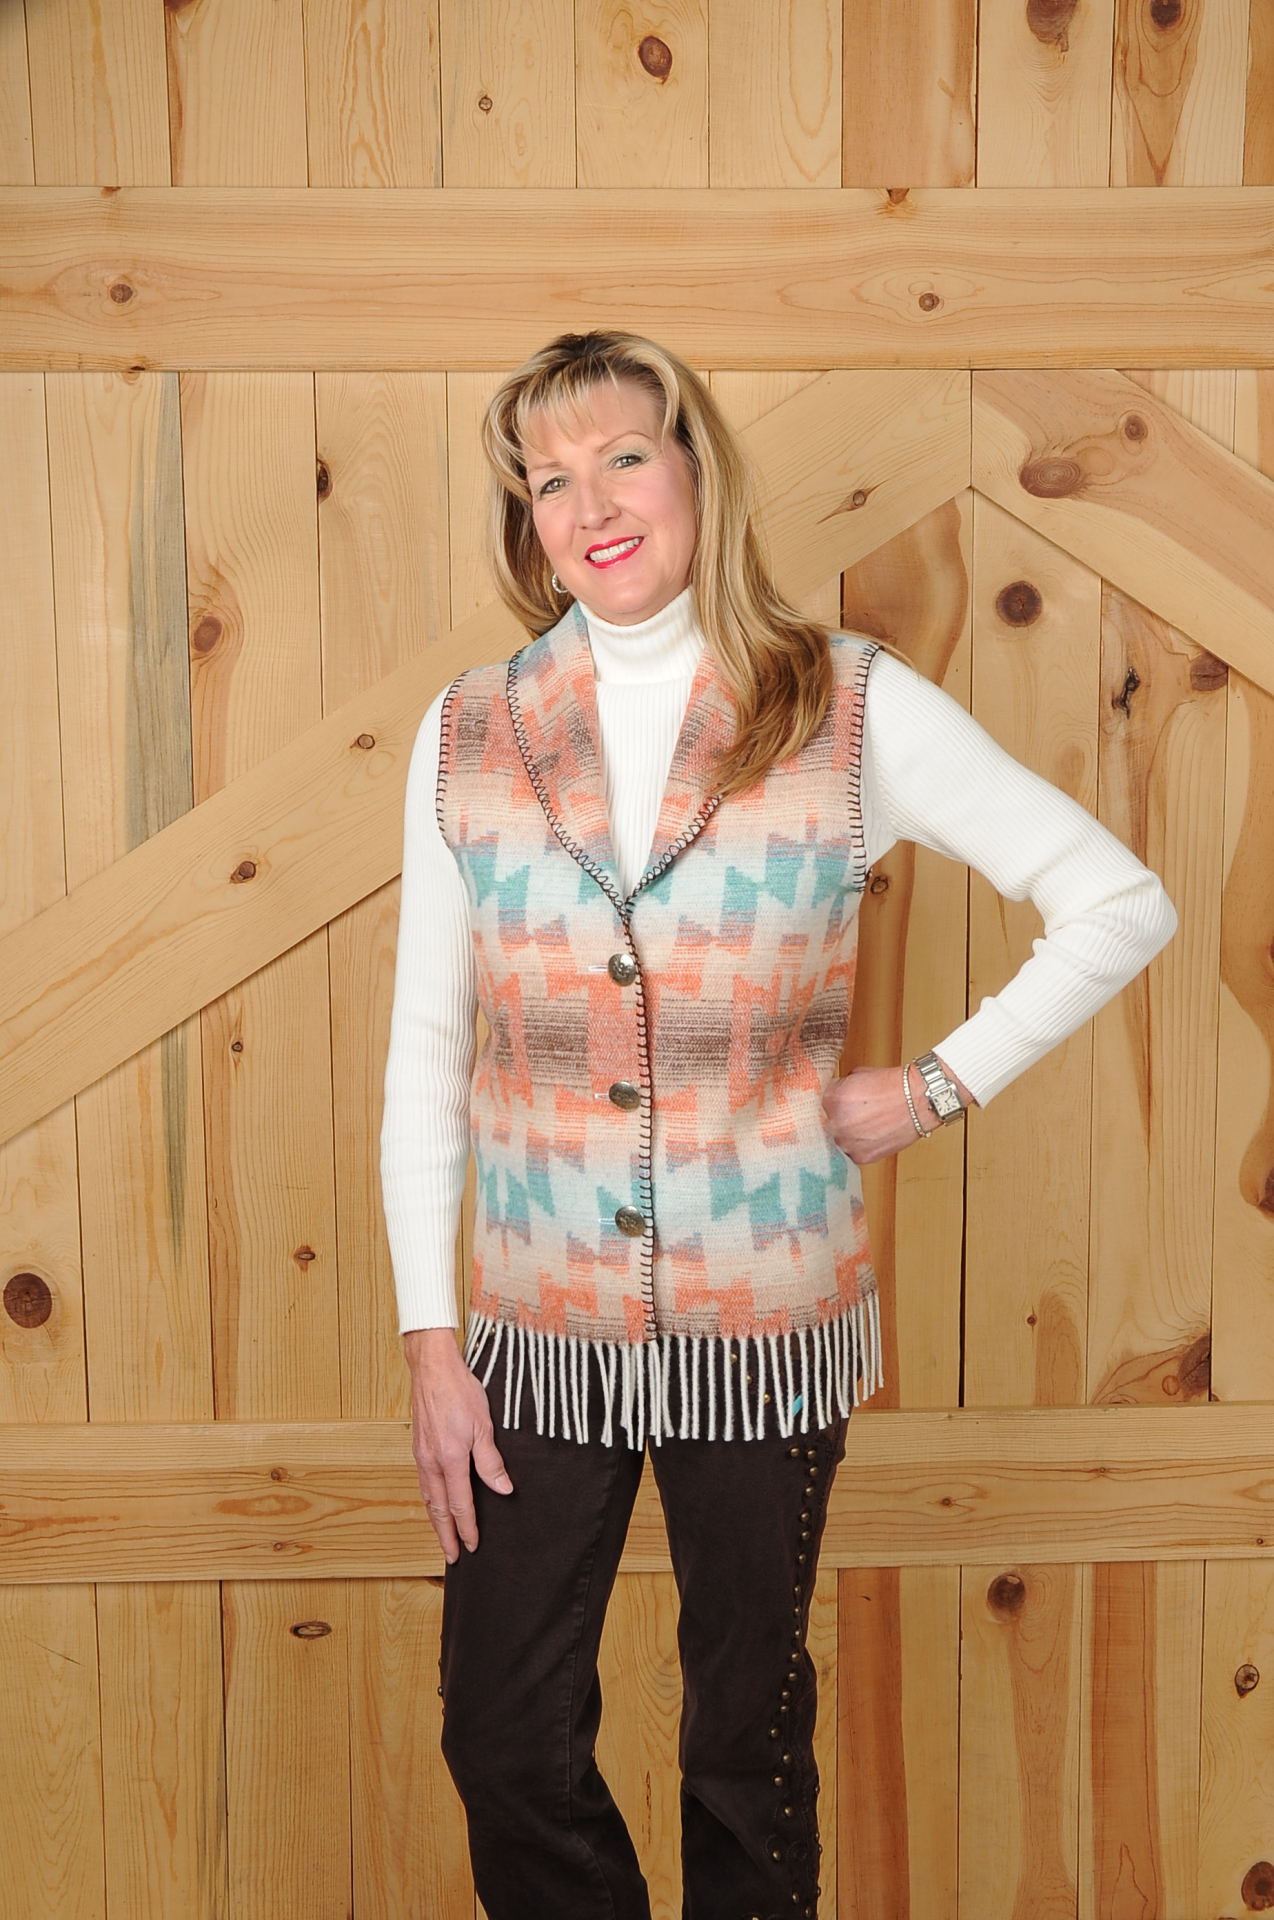 131HSF - HARVEST SKY FRINGE LONG SHAWL VEST            $84.95